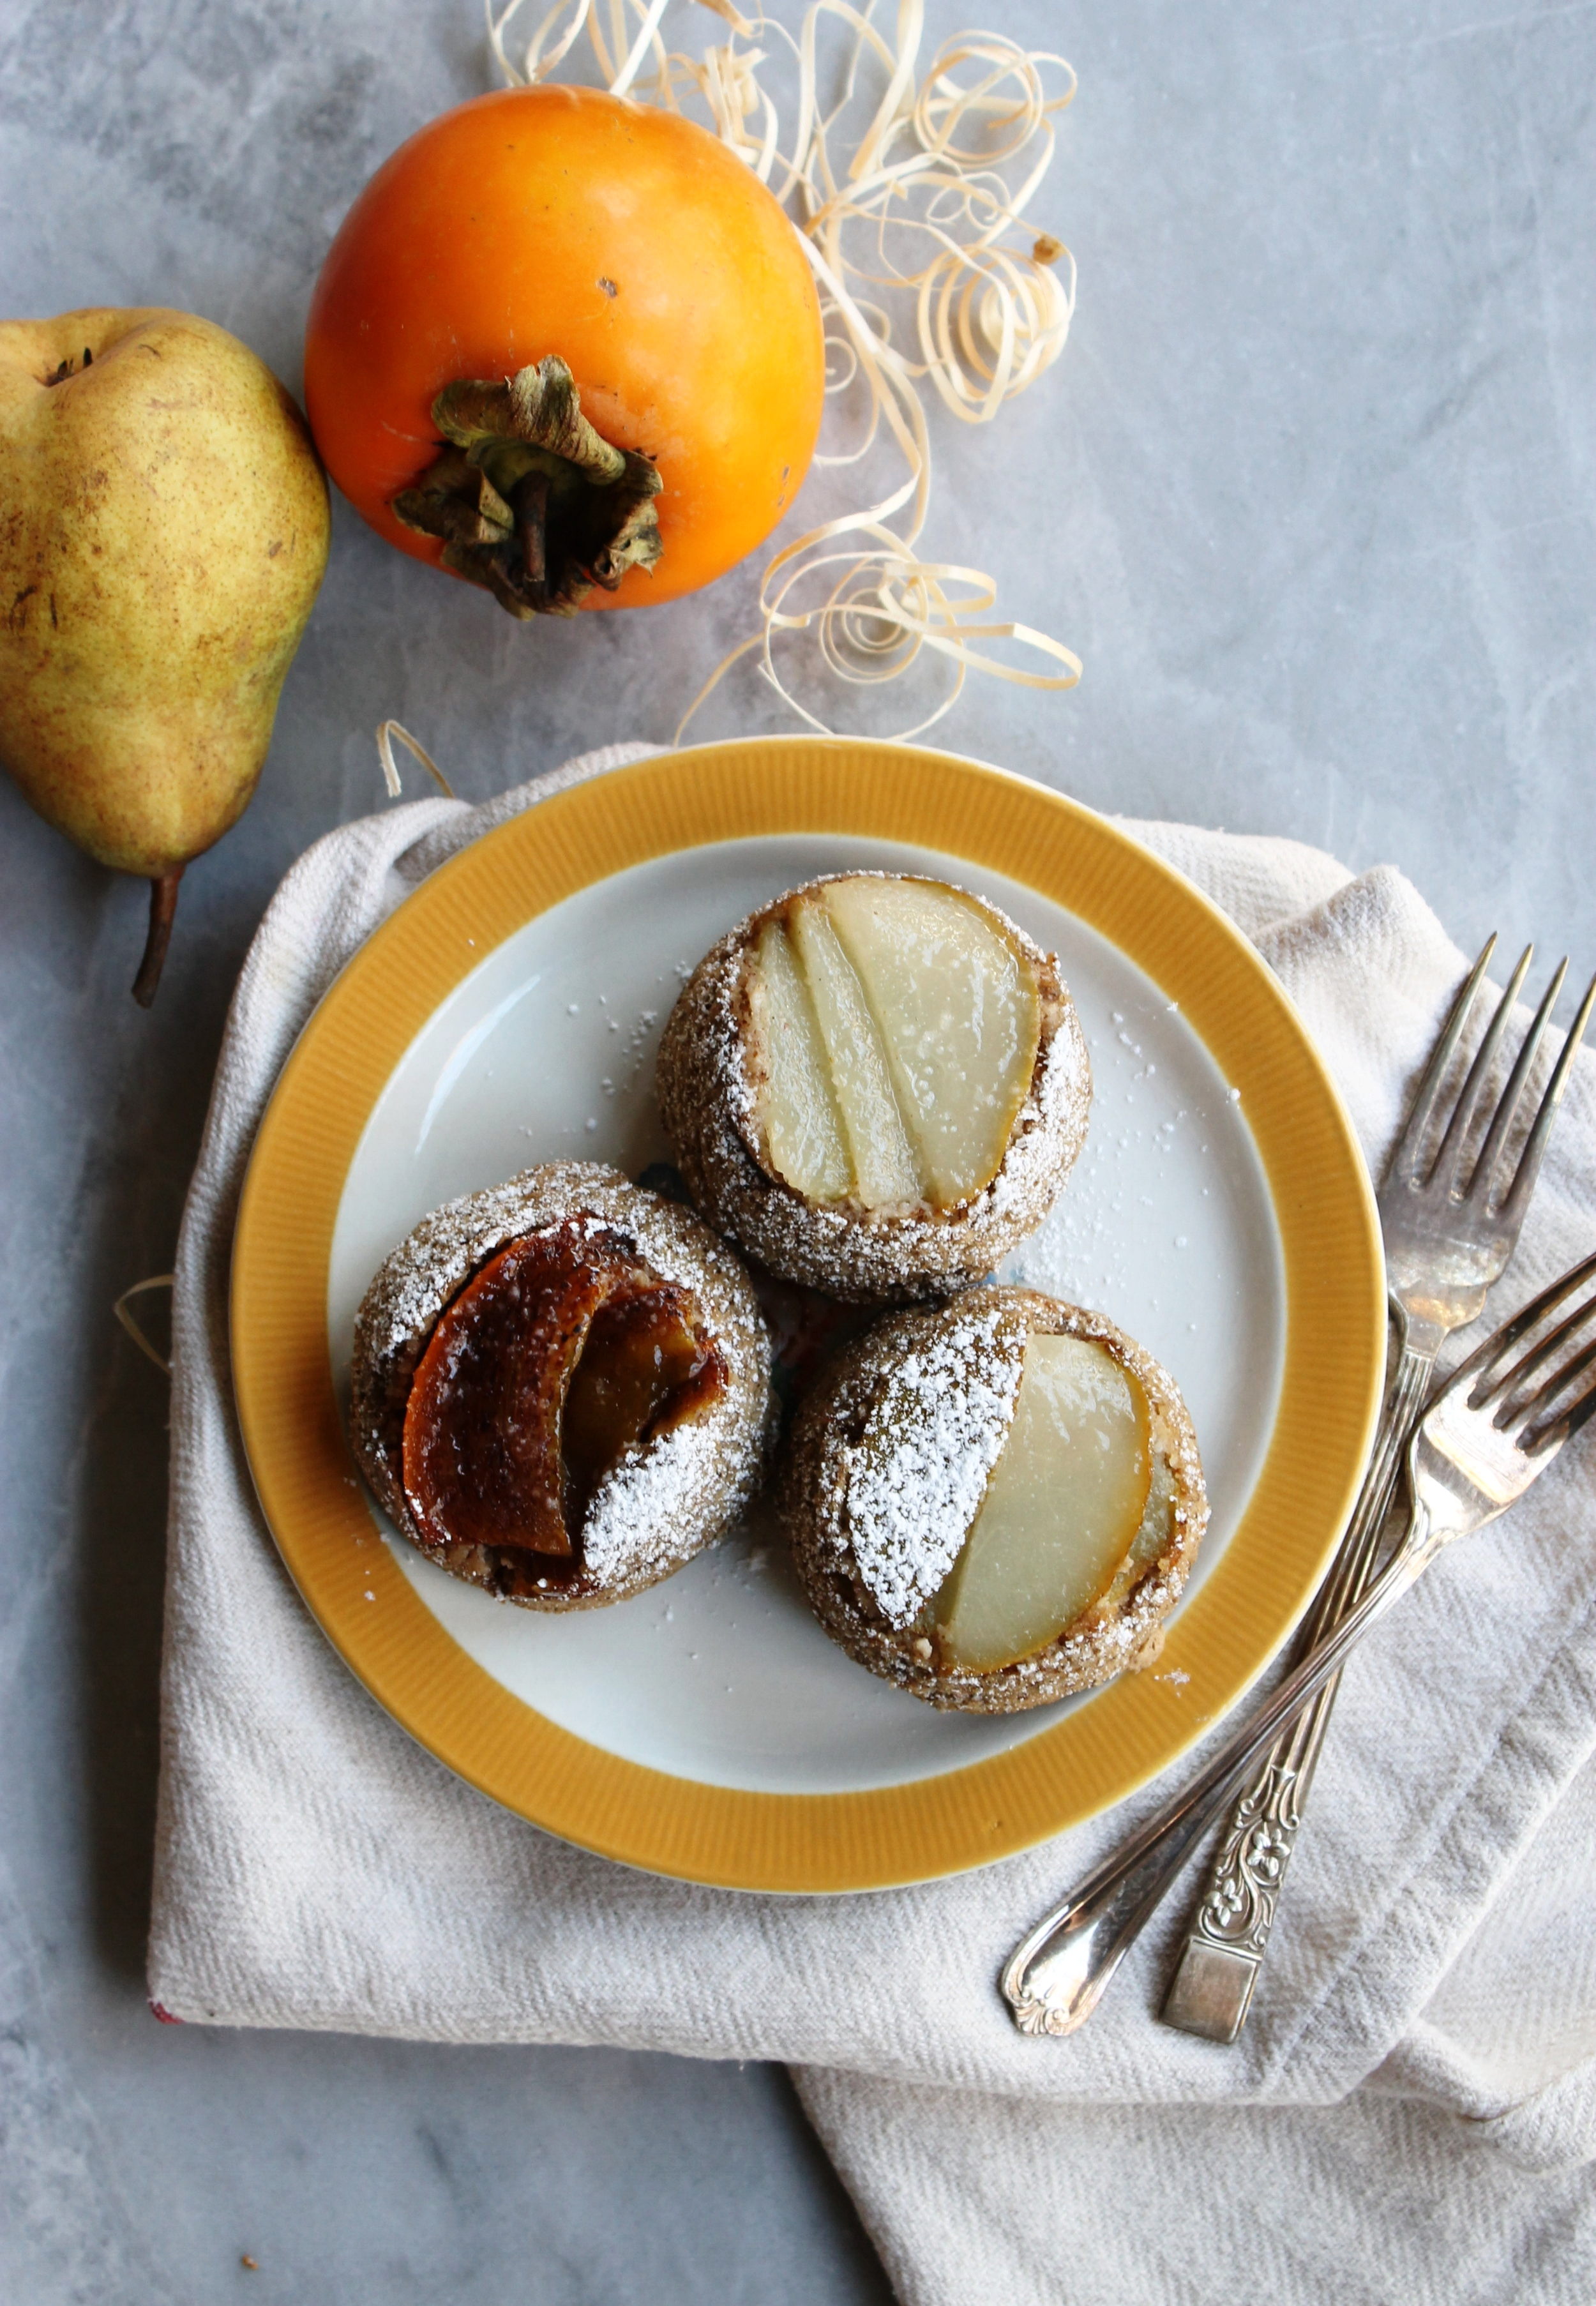 Pear & persimmon cakes | Beloved Kitchen